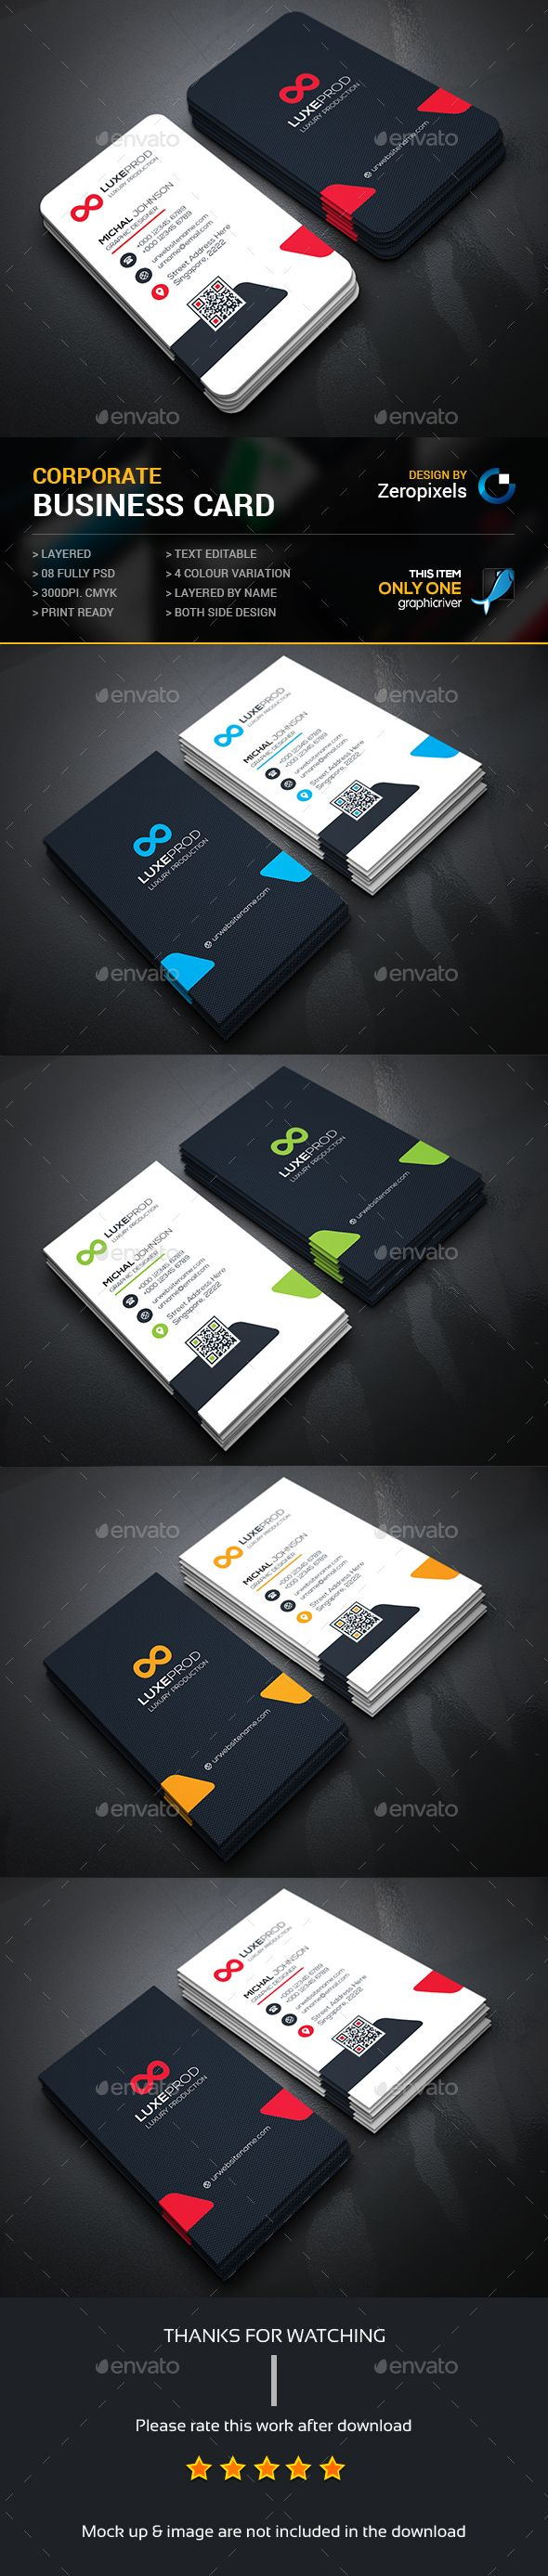 Corporate business card photoshop psd green both side design corporate business card photoshop psd green both side design available here reheart Images